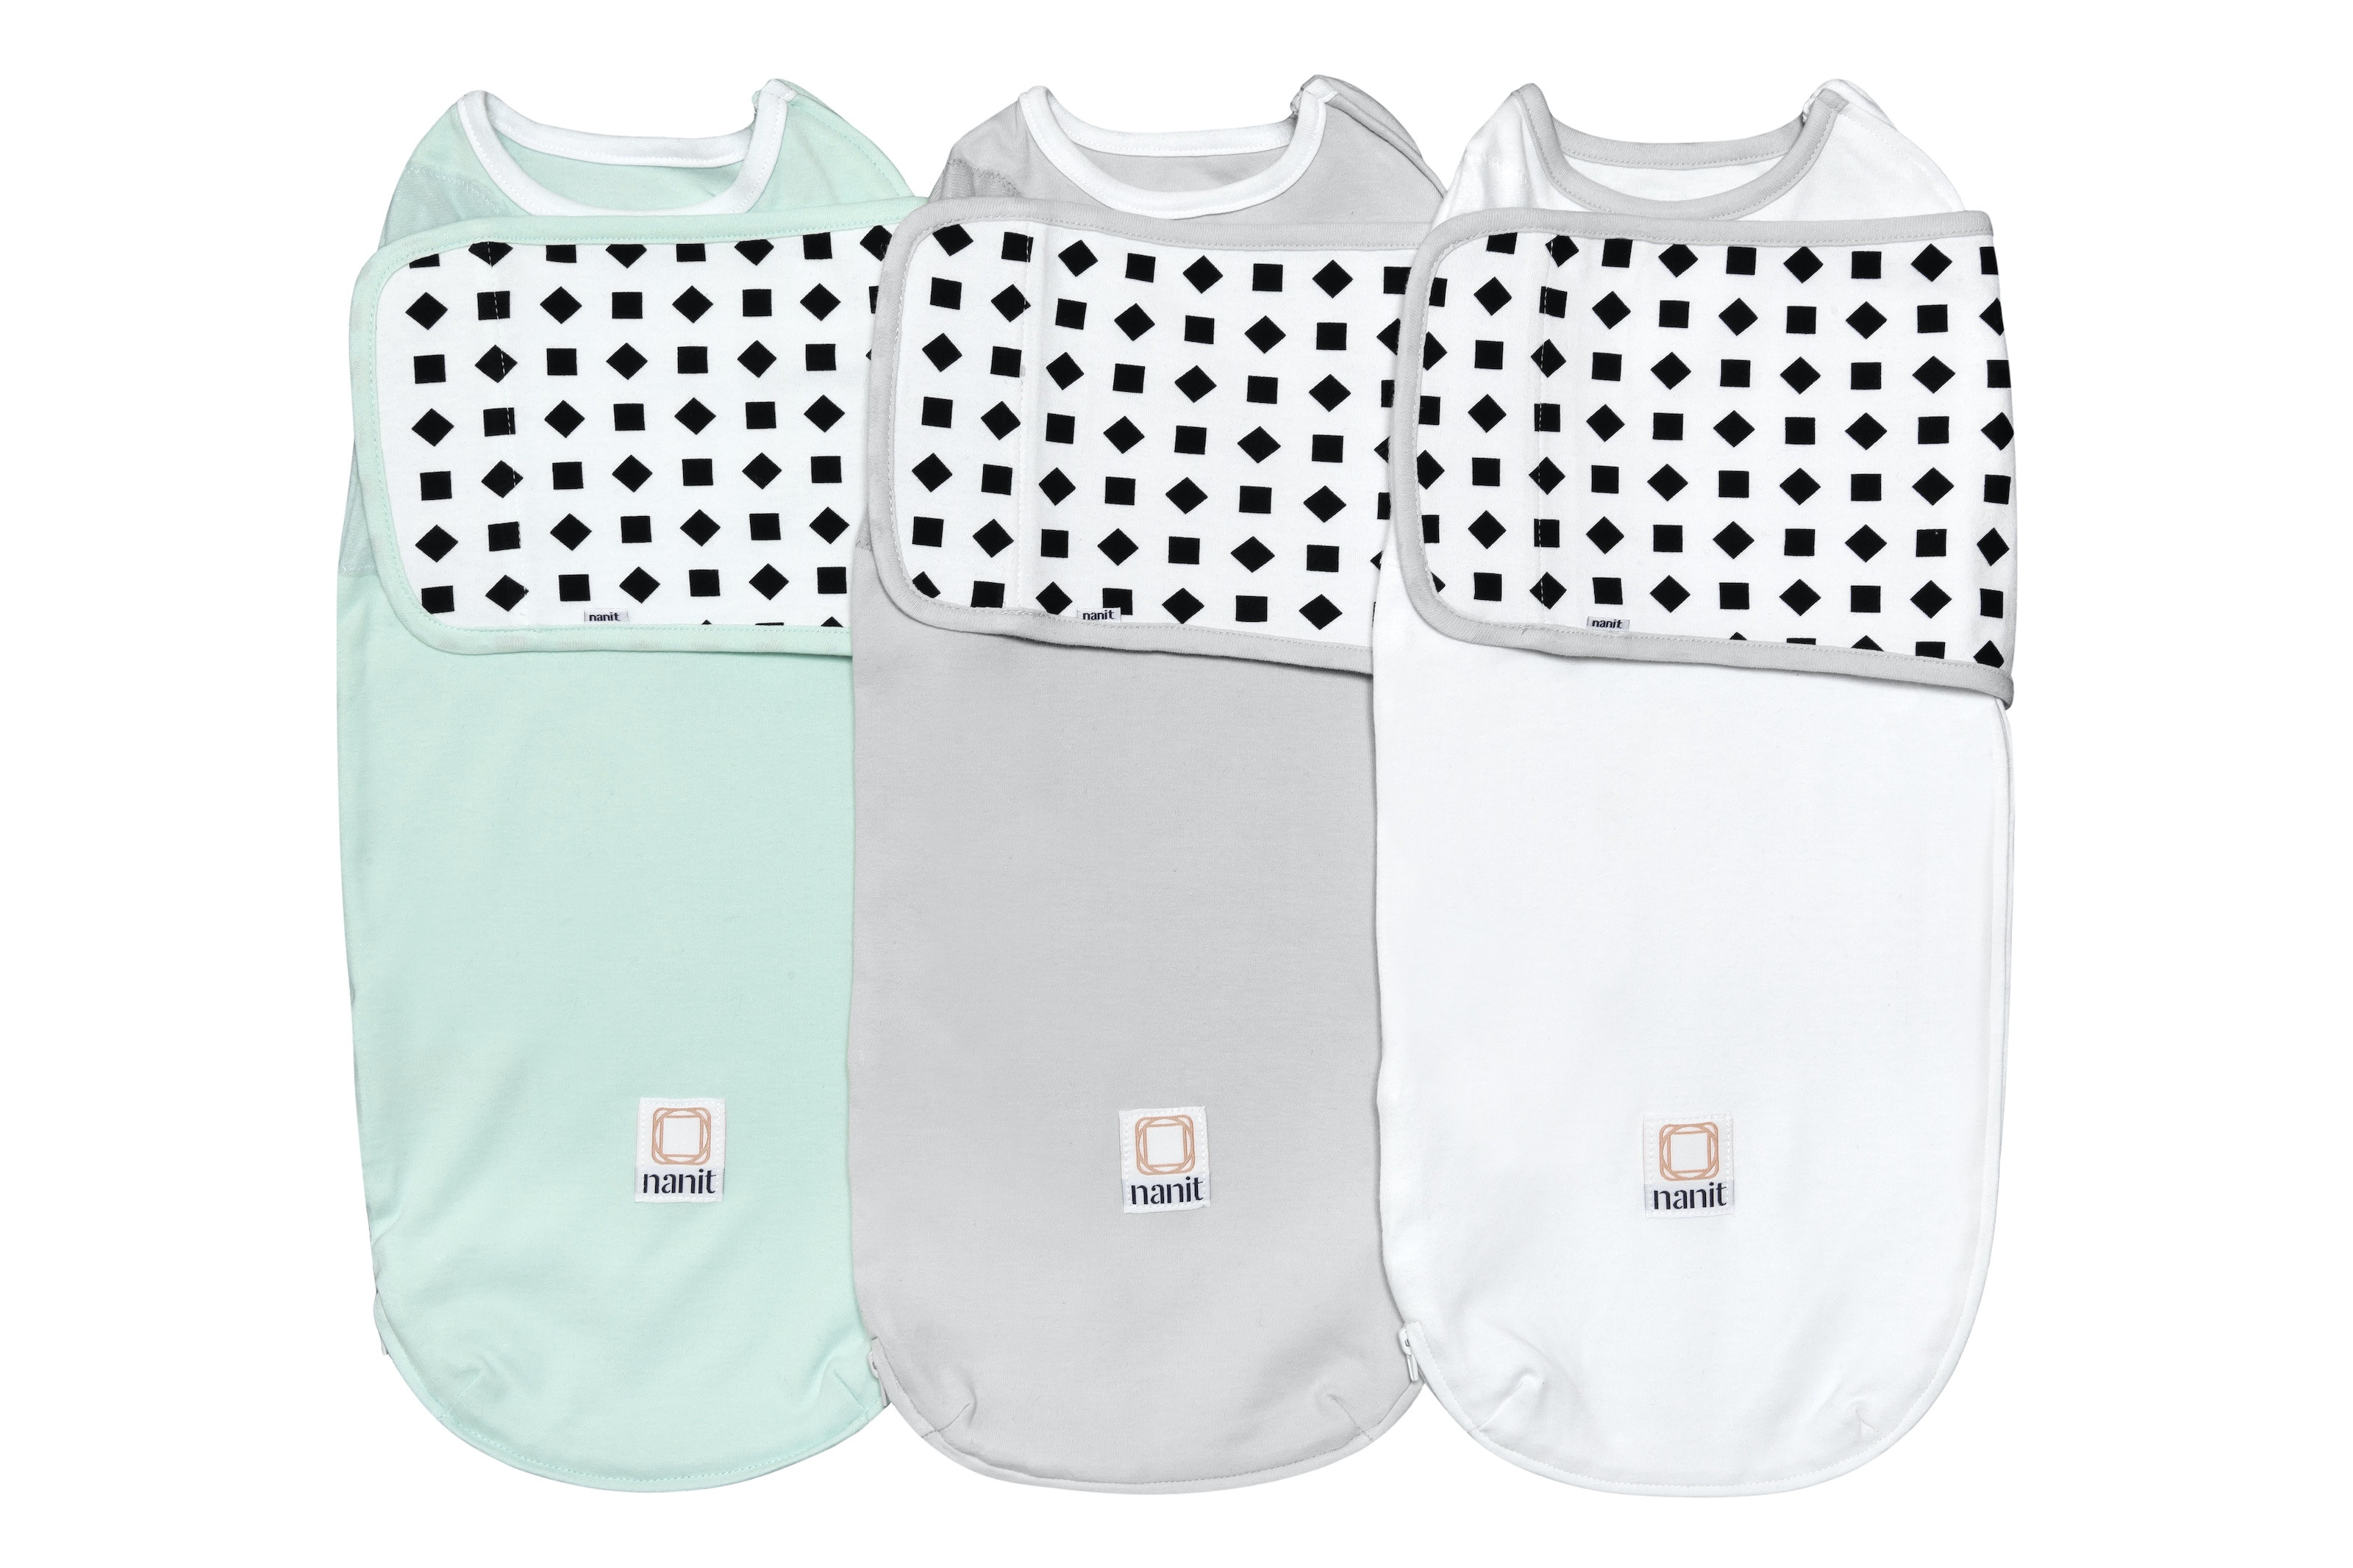 Nanit swaddle 10 3pack